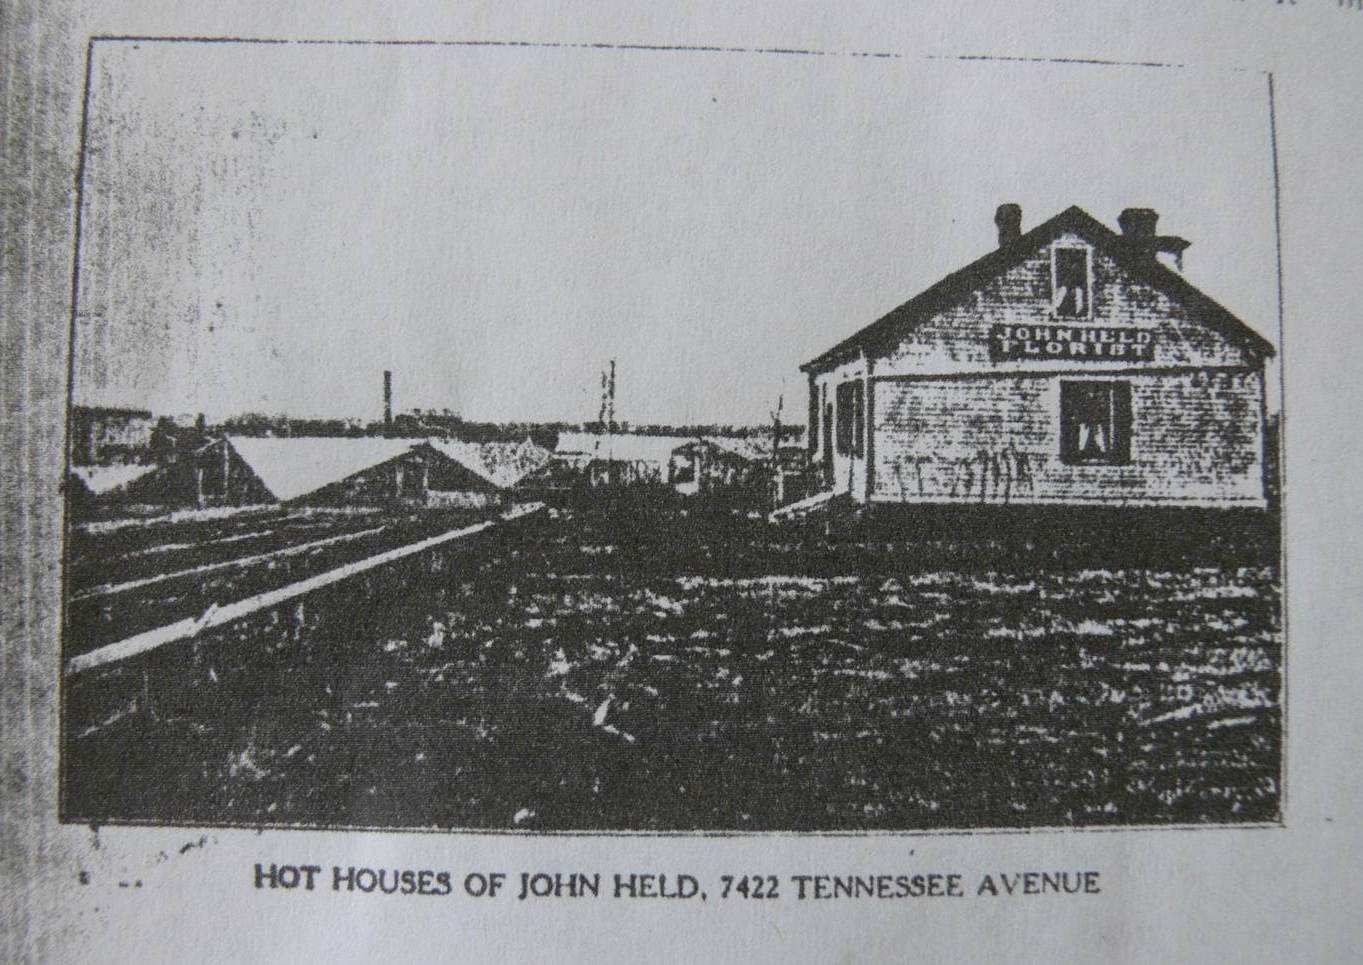 The farm's footprint started out as a flower farm, and it has returned to its roots through Urban Buds. In this undated historical photo, you can see the origins of the property.